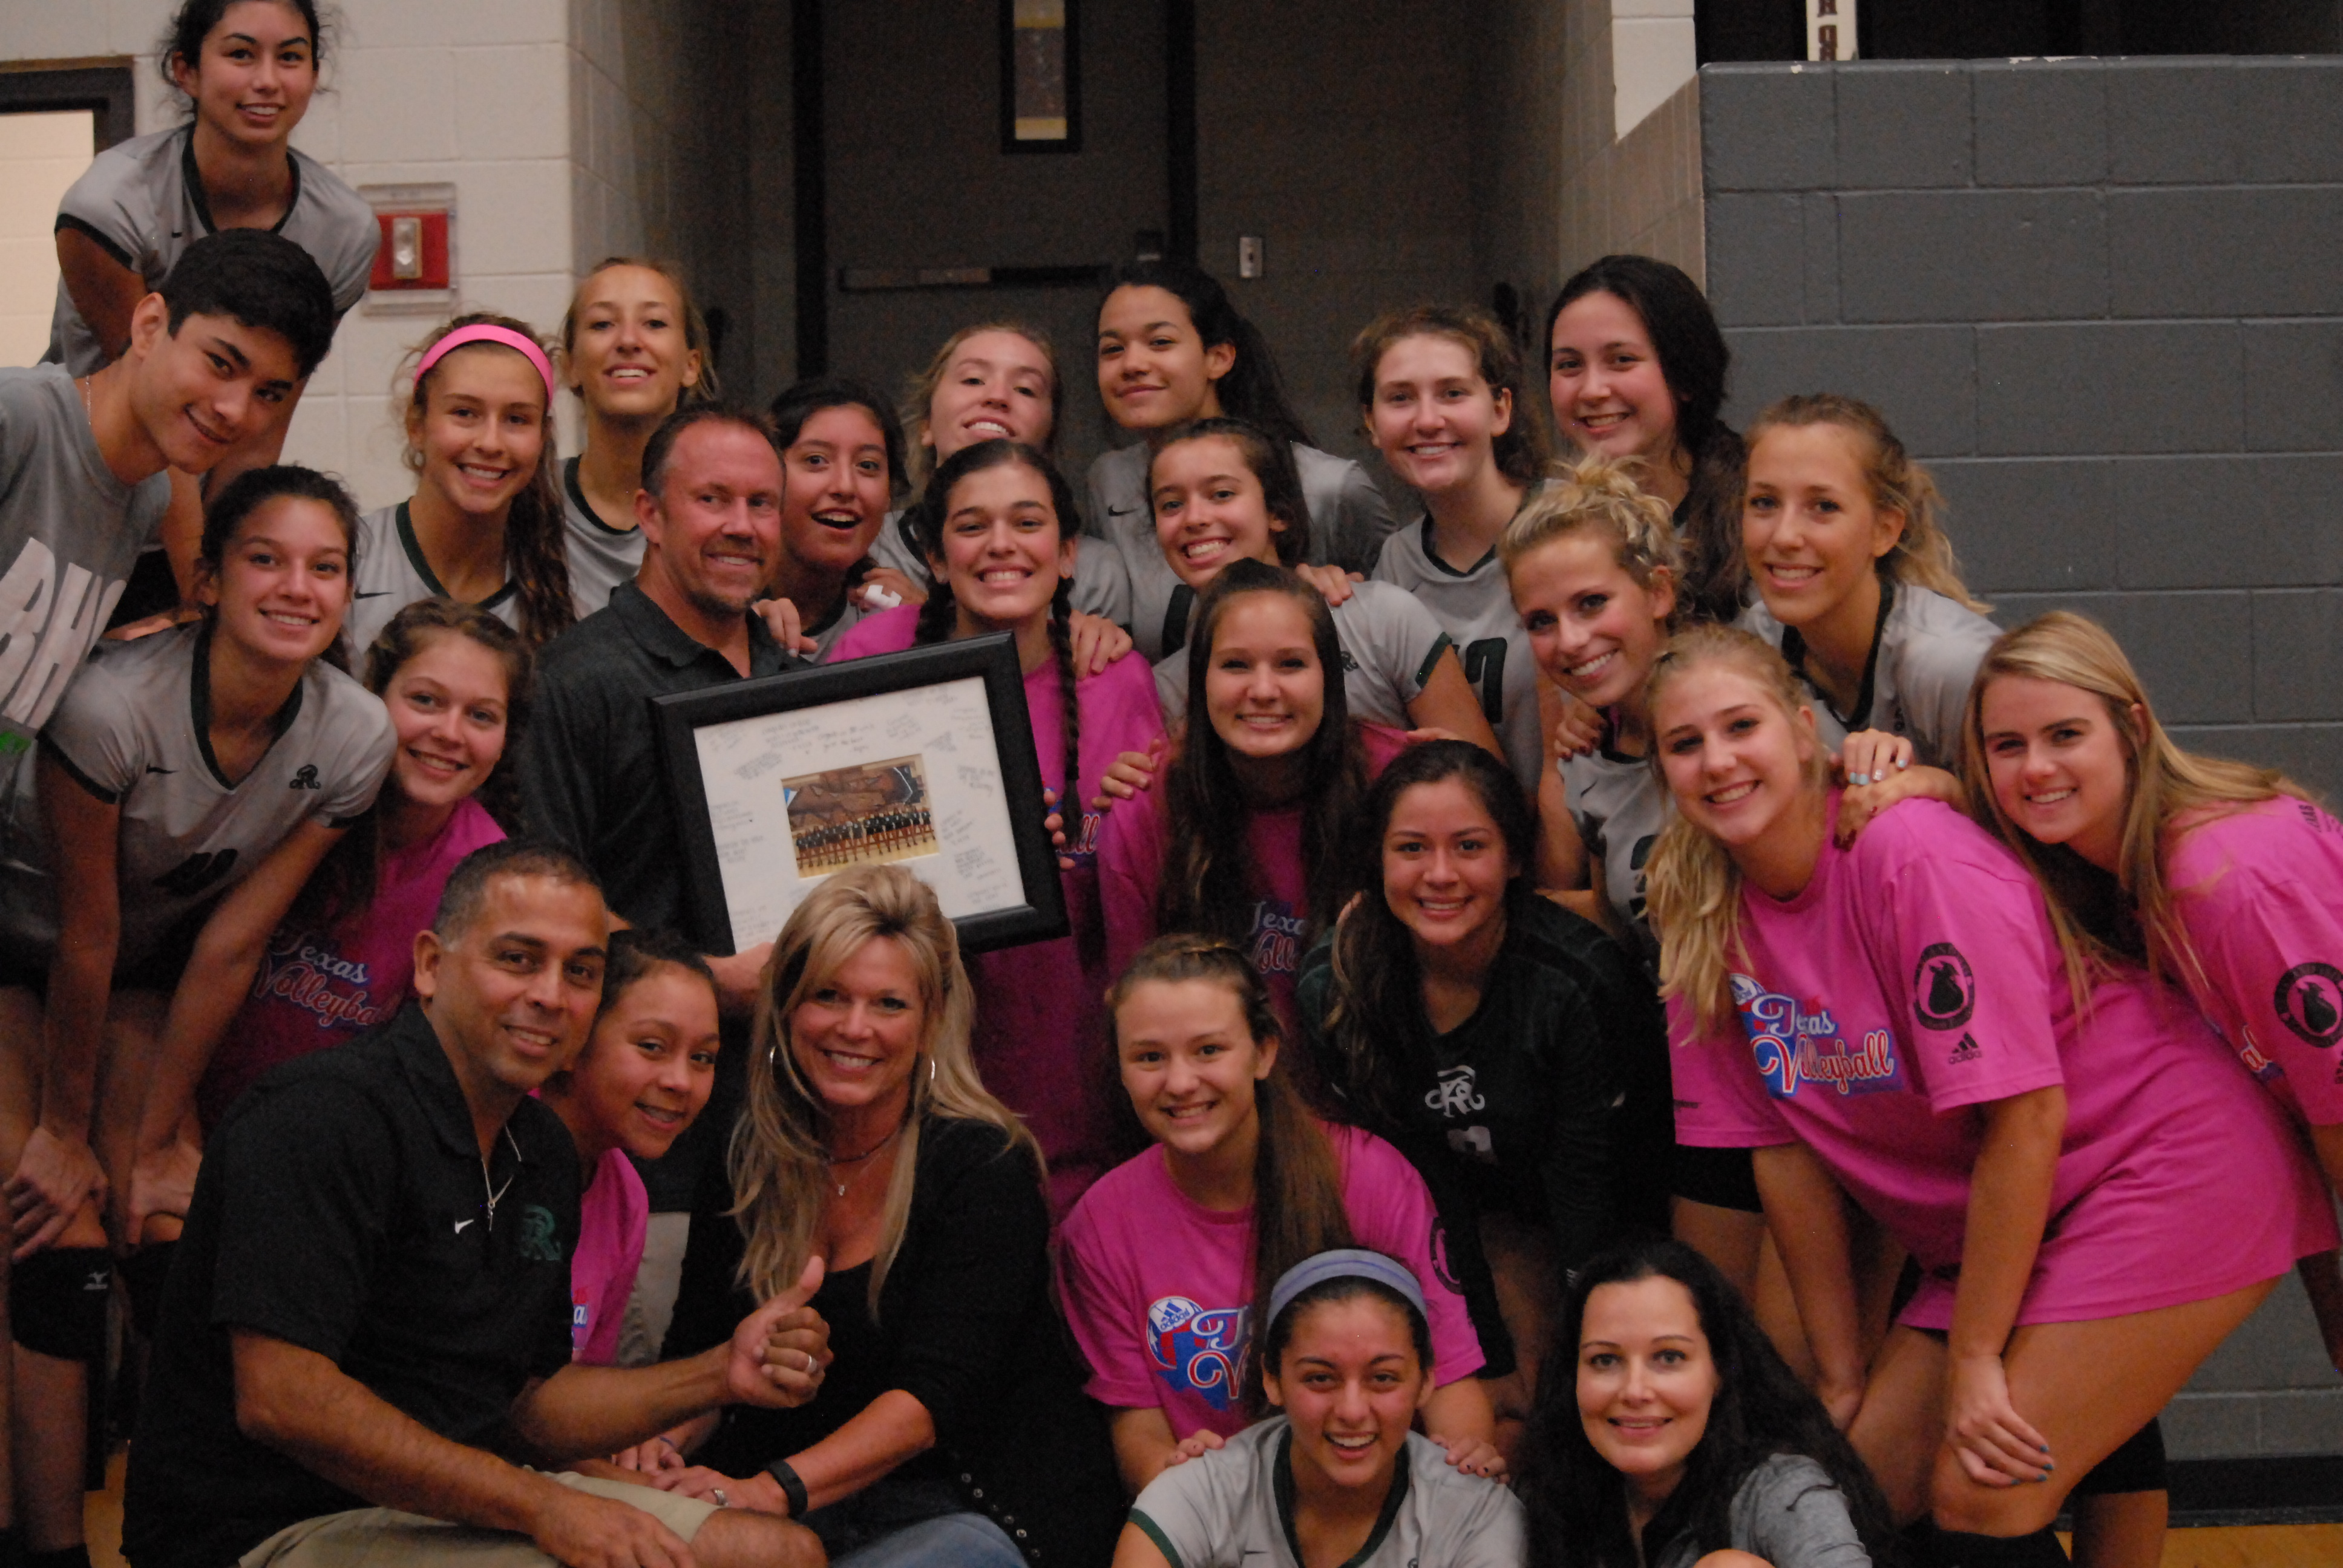 Carter's 800th win at Texas Volleyball Invitational